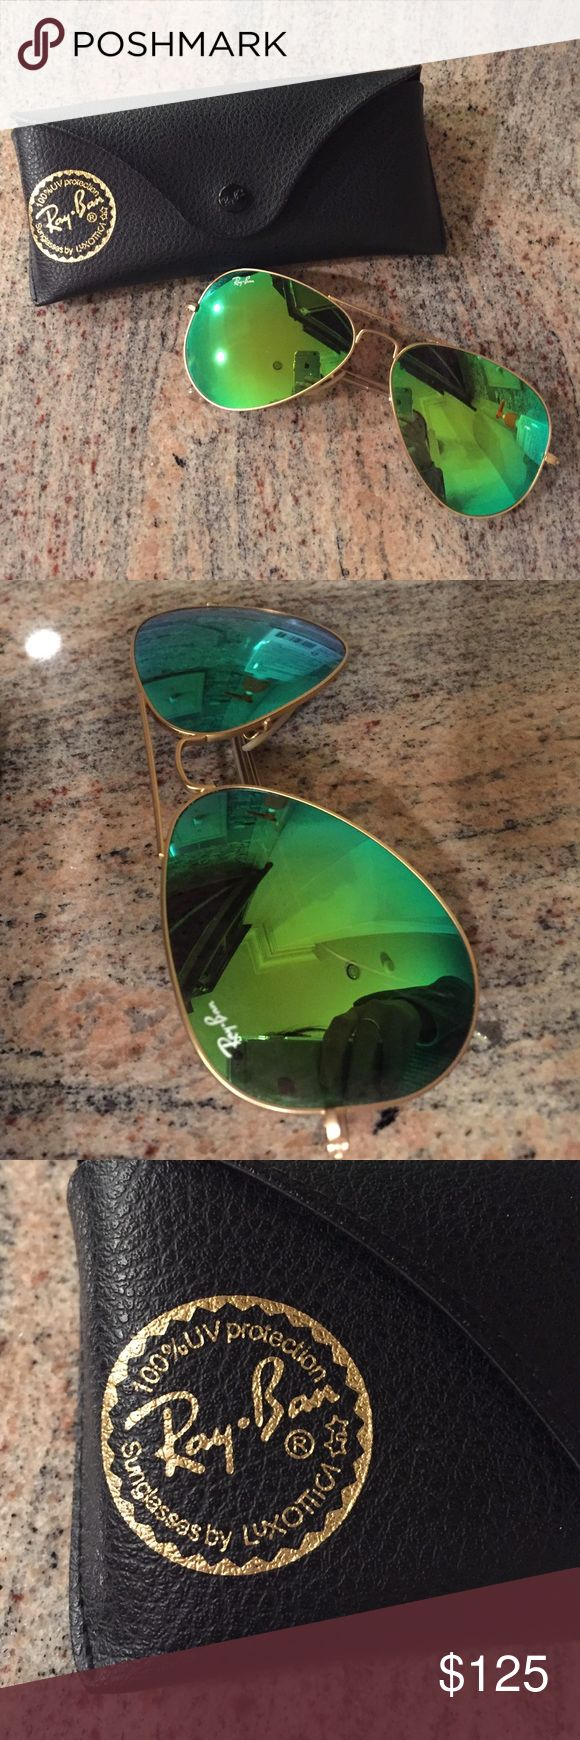 Green Mirror Aviator Ray Bans in great condition! Green Mirror Aviator Ray Bans in great condition! Ray-Ban Accessories Sunglasses